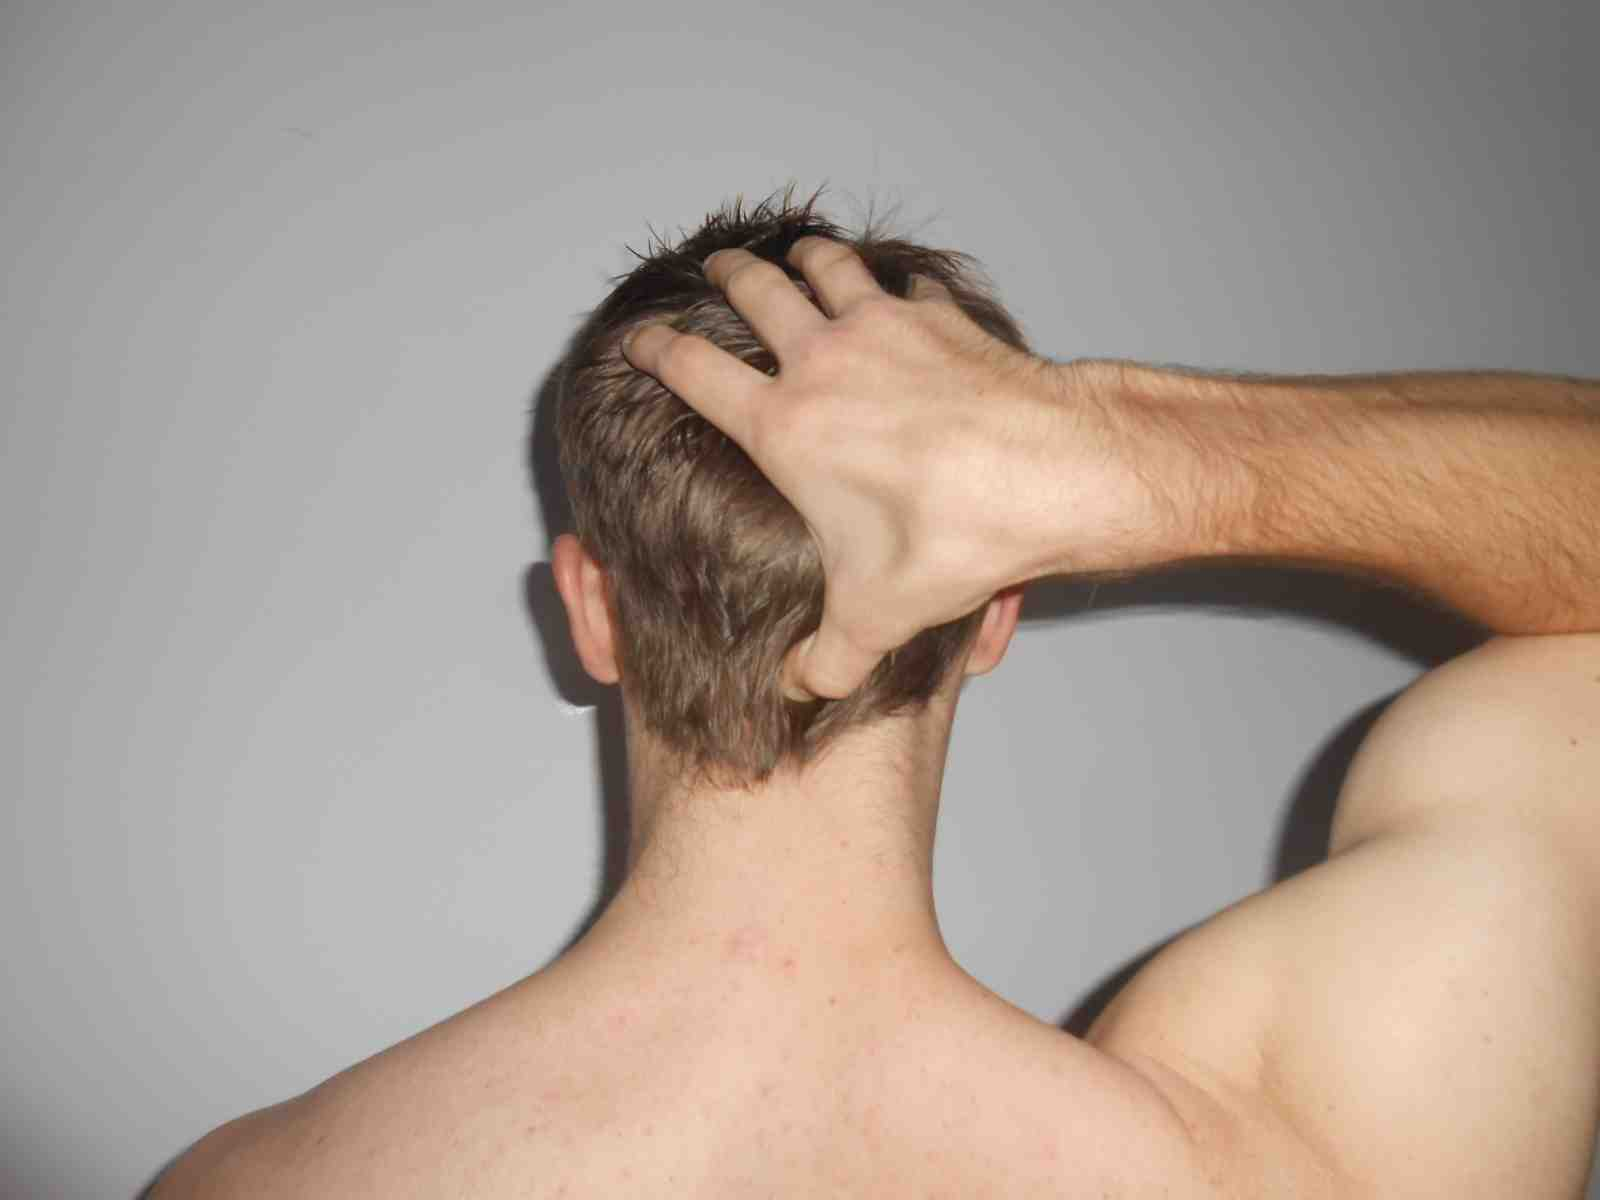 Acupressure points for neck pain relief acupressure points guide image source sinuspressurepoints solutioingenieria Image collections